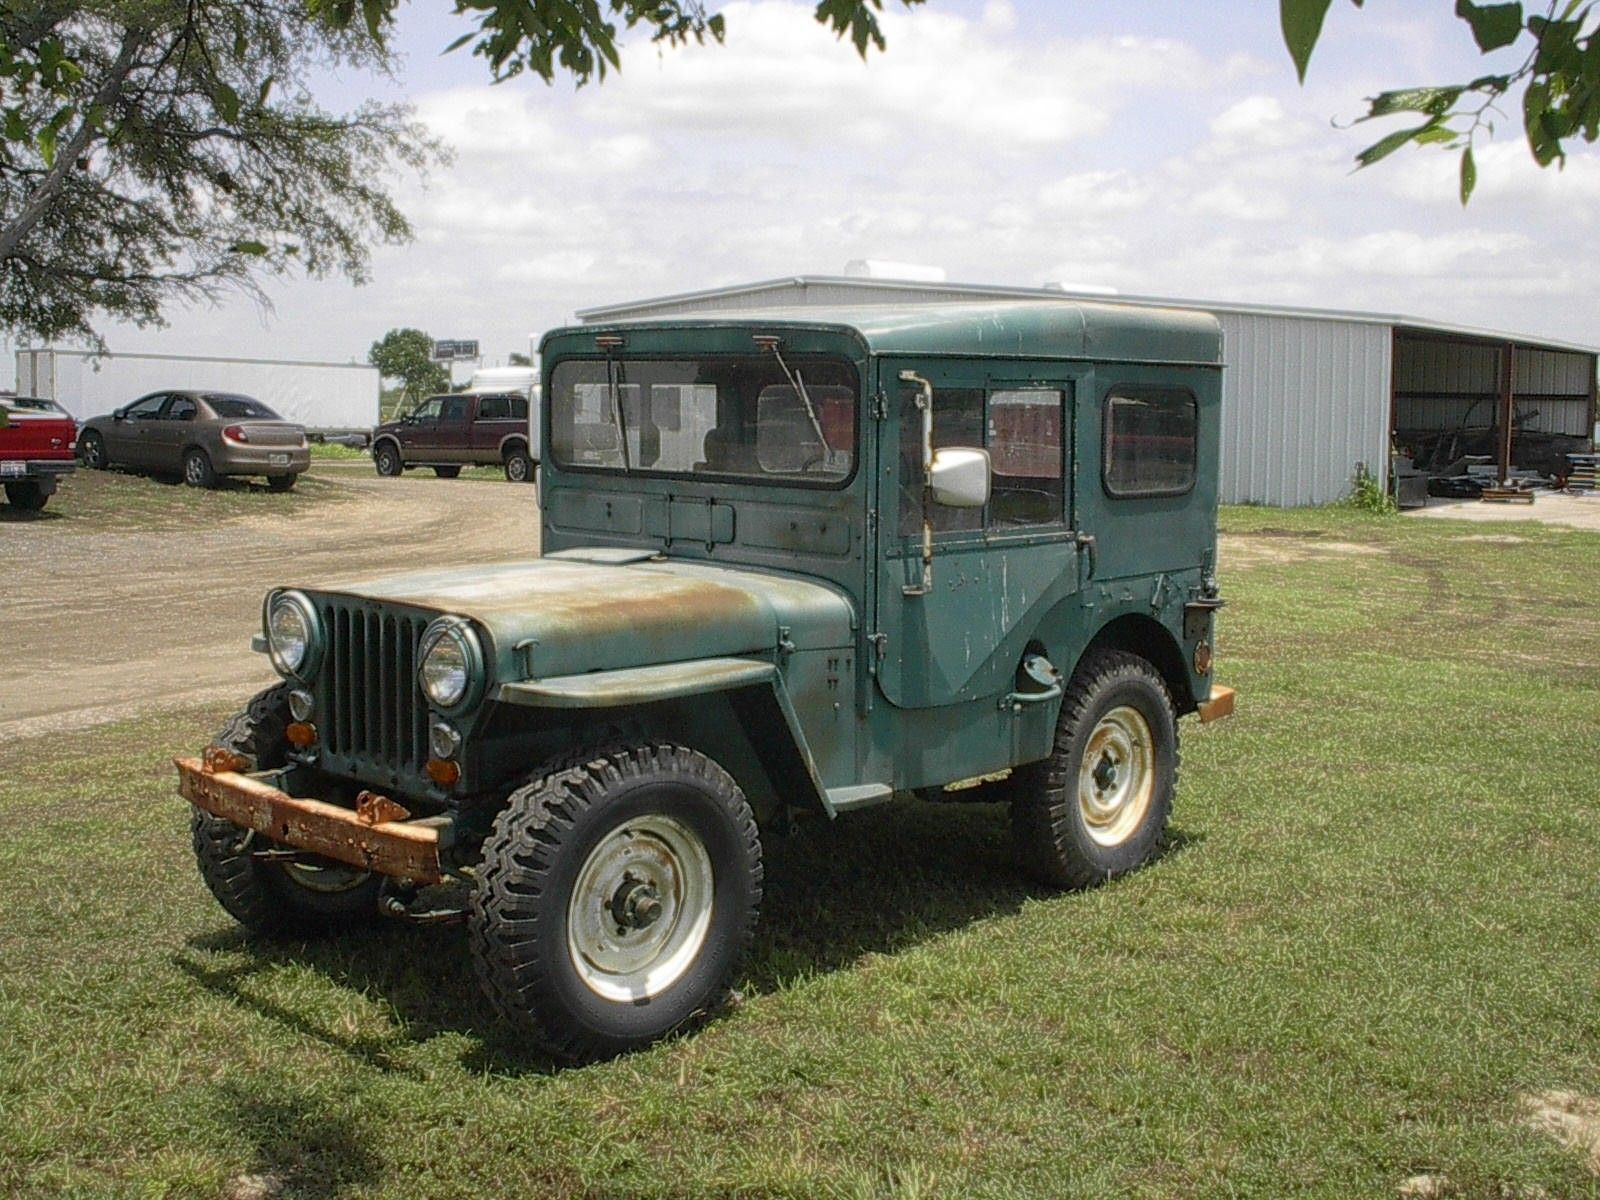 M38 Willys Jeep For Sale In Waxahachie Texas Korean War Army Jeep